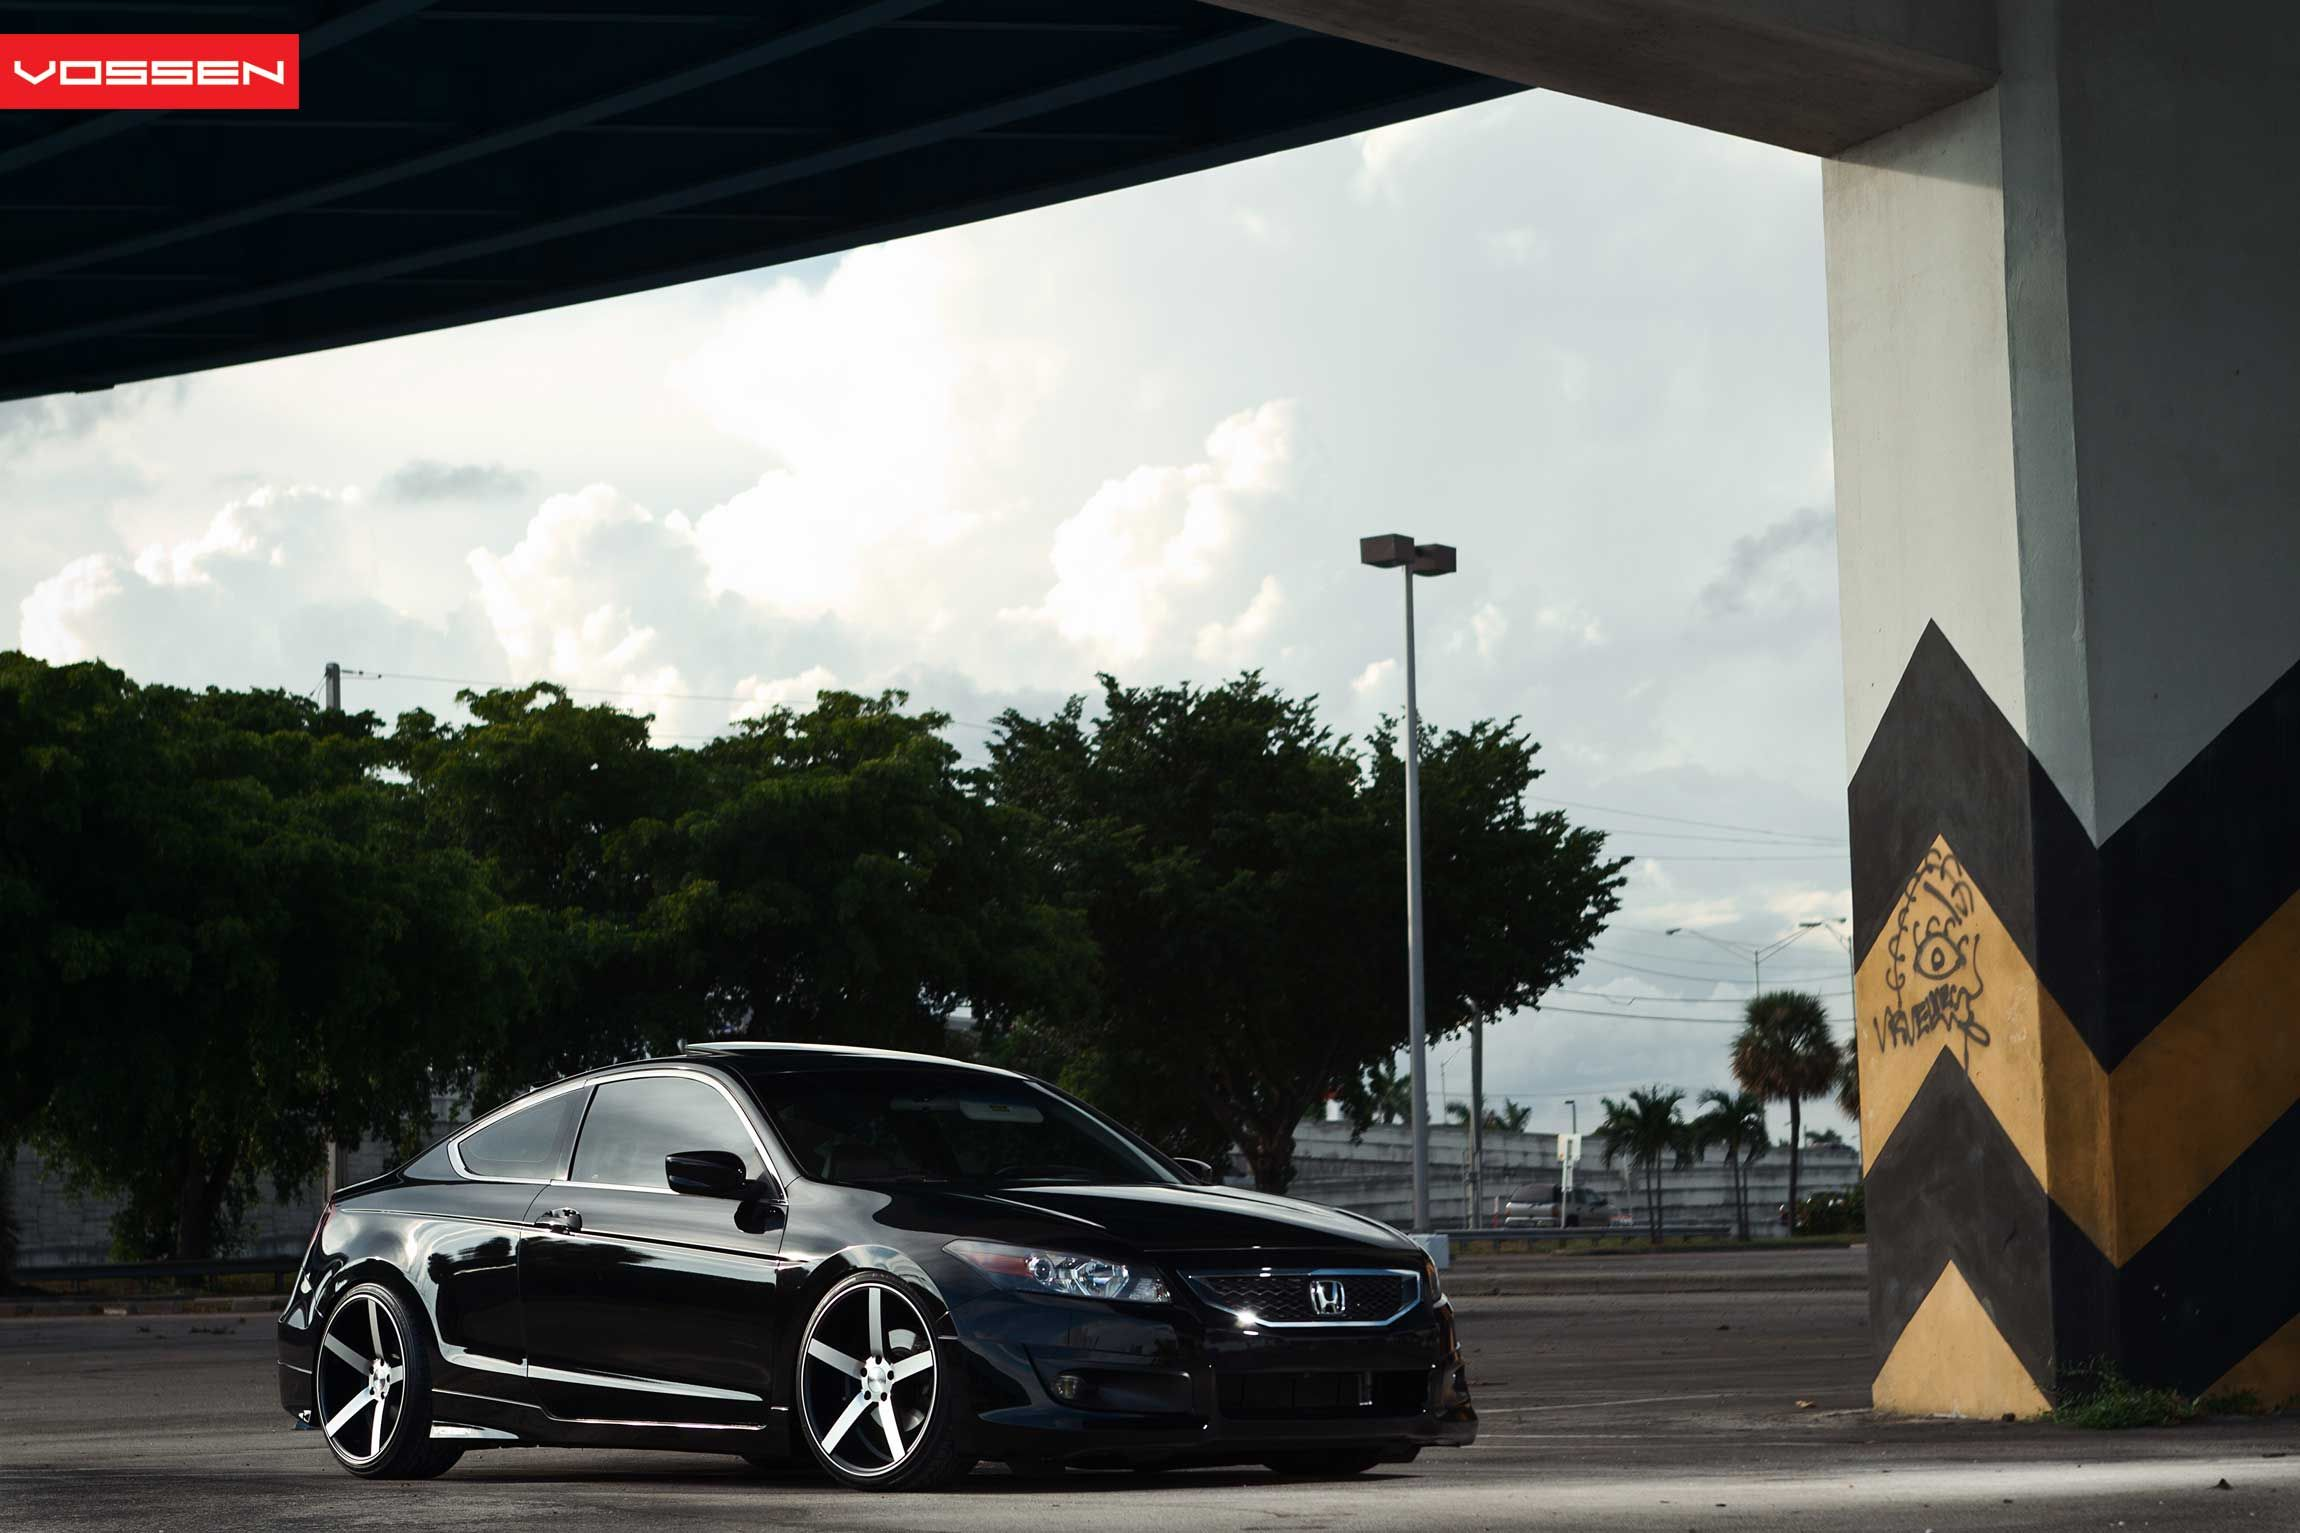 honda accord coupe on vossen vvscv3 wheels and full body kit will be done by the end of the year  [ 2300 x 1533 Pixel ]